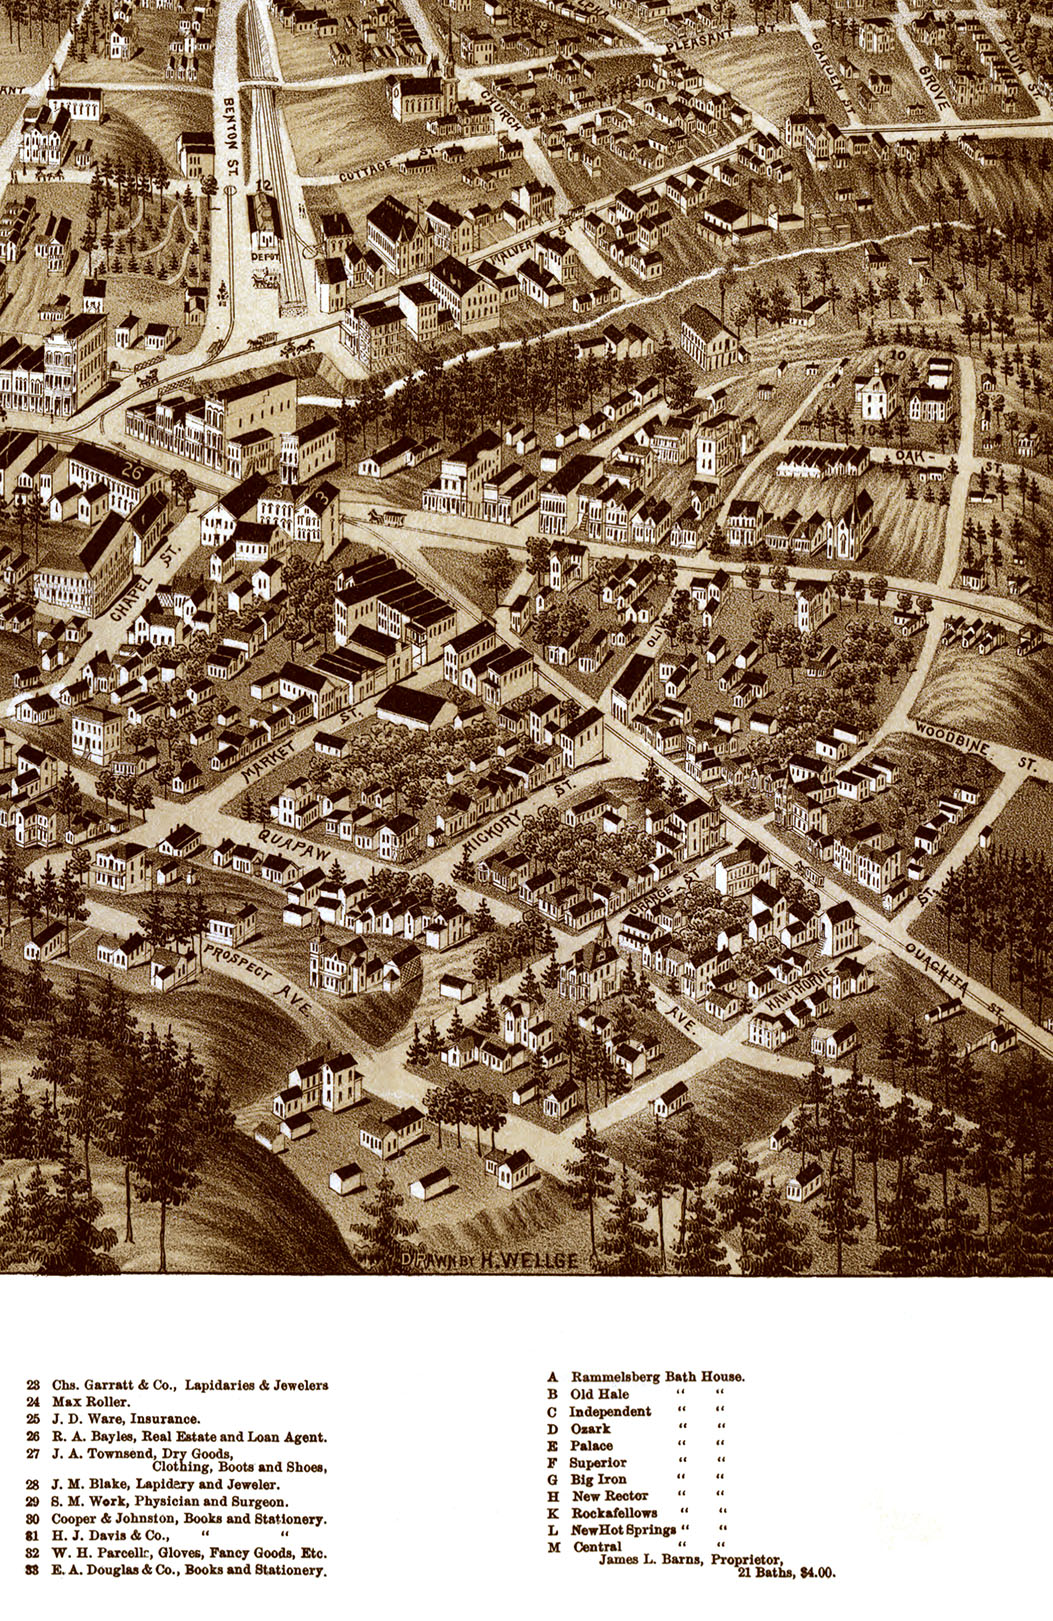 Hot Springs AR in 1888 - Bird's Eye View Map, Aerial map, Panorama, on map of arkansas beebe, map of arkansas ozarks, map of arkansas boone county, map of arkansas berryville, map of arkansas little rock, map of arkansas conway, map of arkansas hope, map of arkansas lakes, map of arkansas harrison, map of arkansas searcy, map of arkansas mountain view, map of arkansas louisiana, map of arkansas paragould, map of arkansas with rivers, map of arkansas national forests, map of arkansas state parks, map of arkansas texas, map of arkansas murfreesboro, map of arkansas mountain pine, map of arkansas russellville,